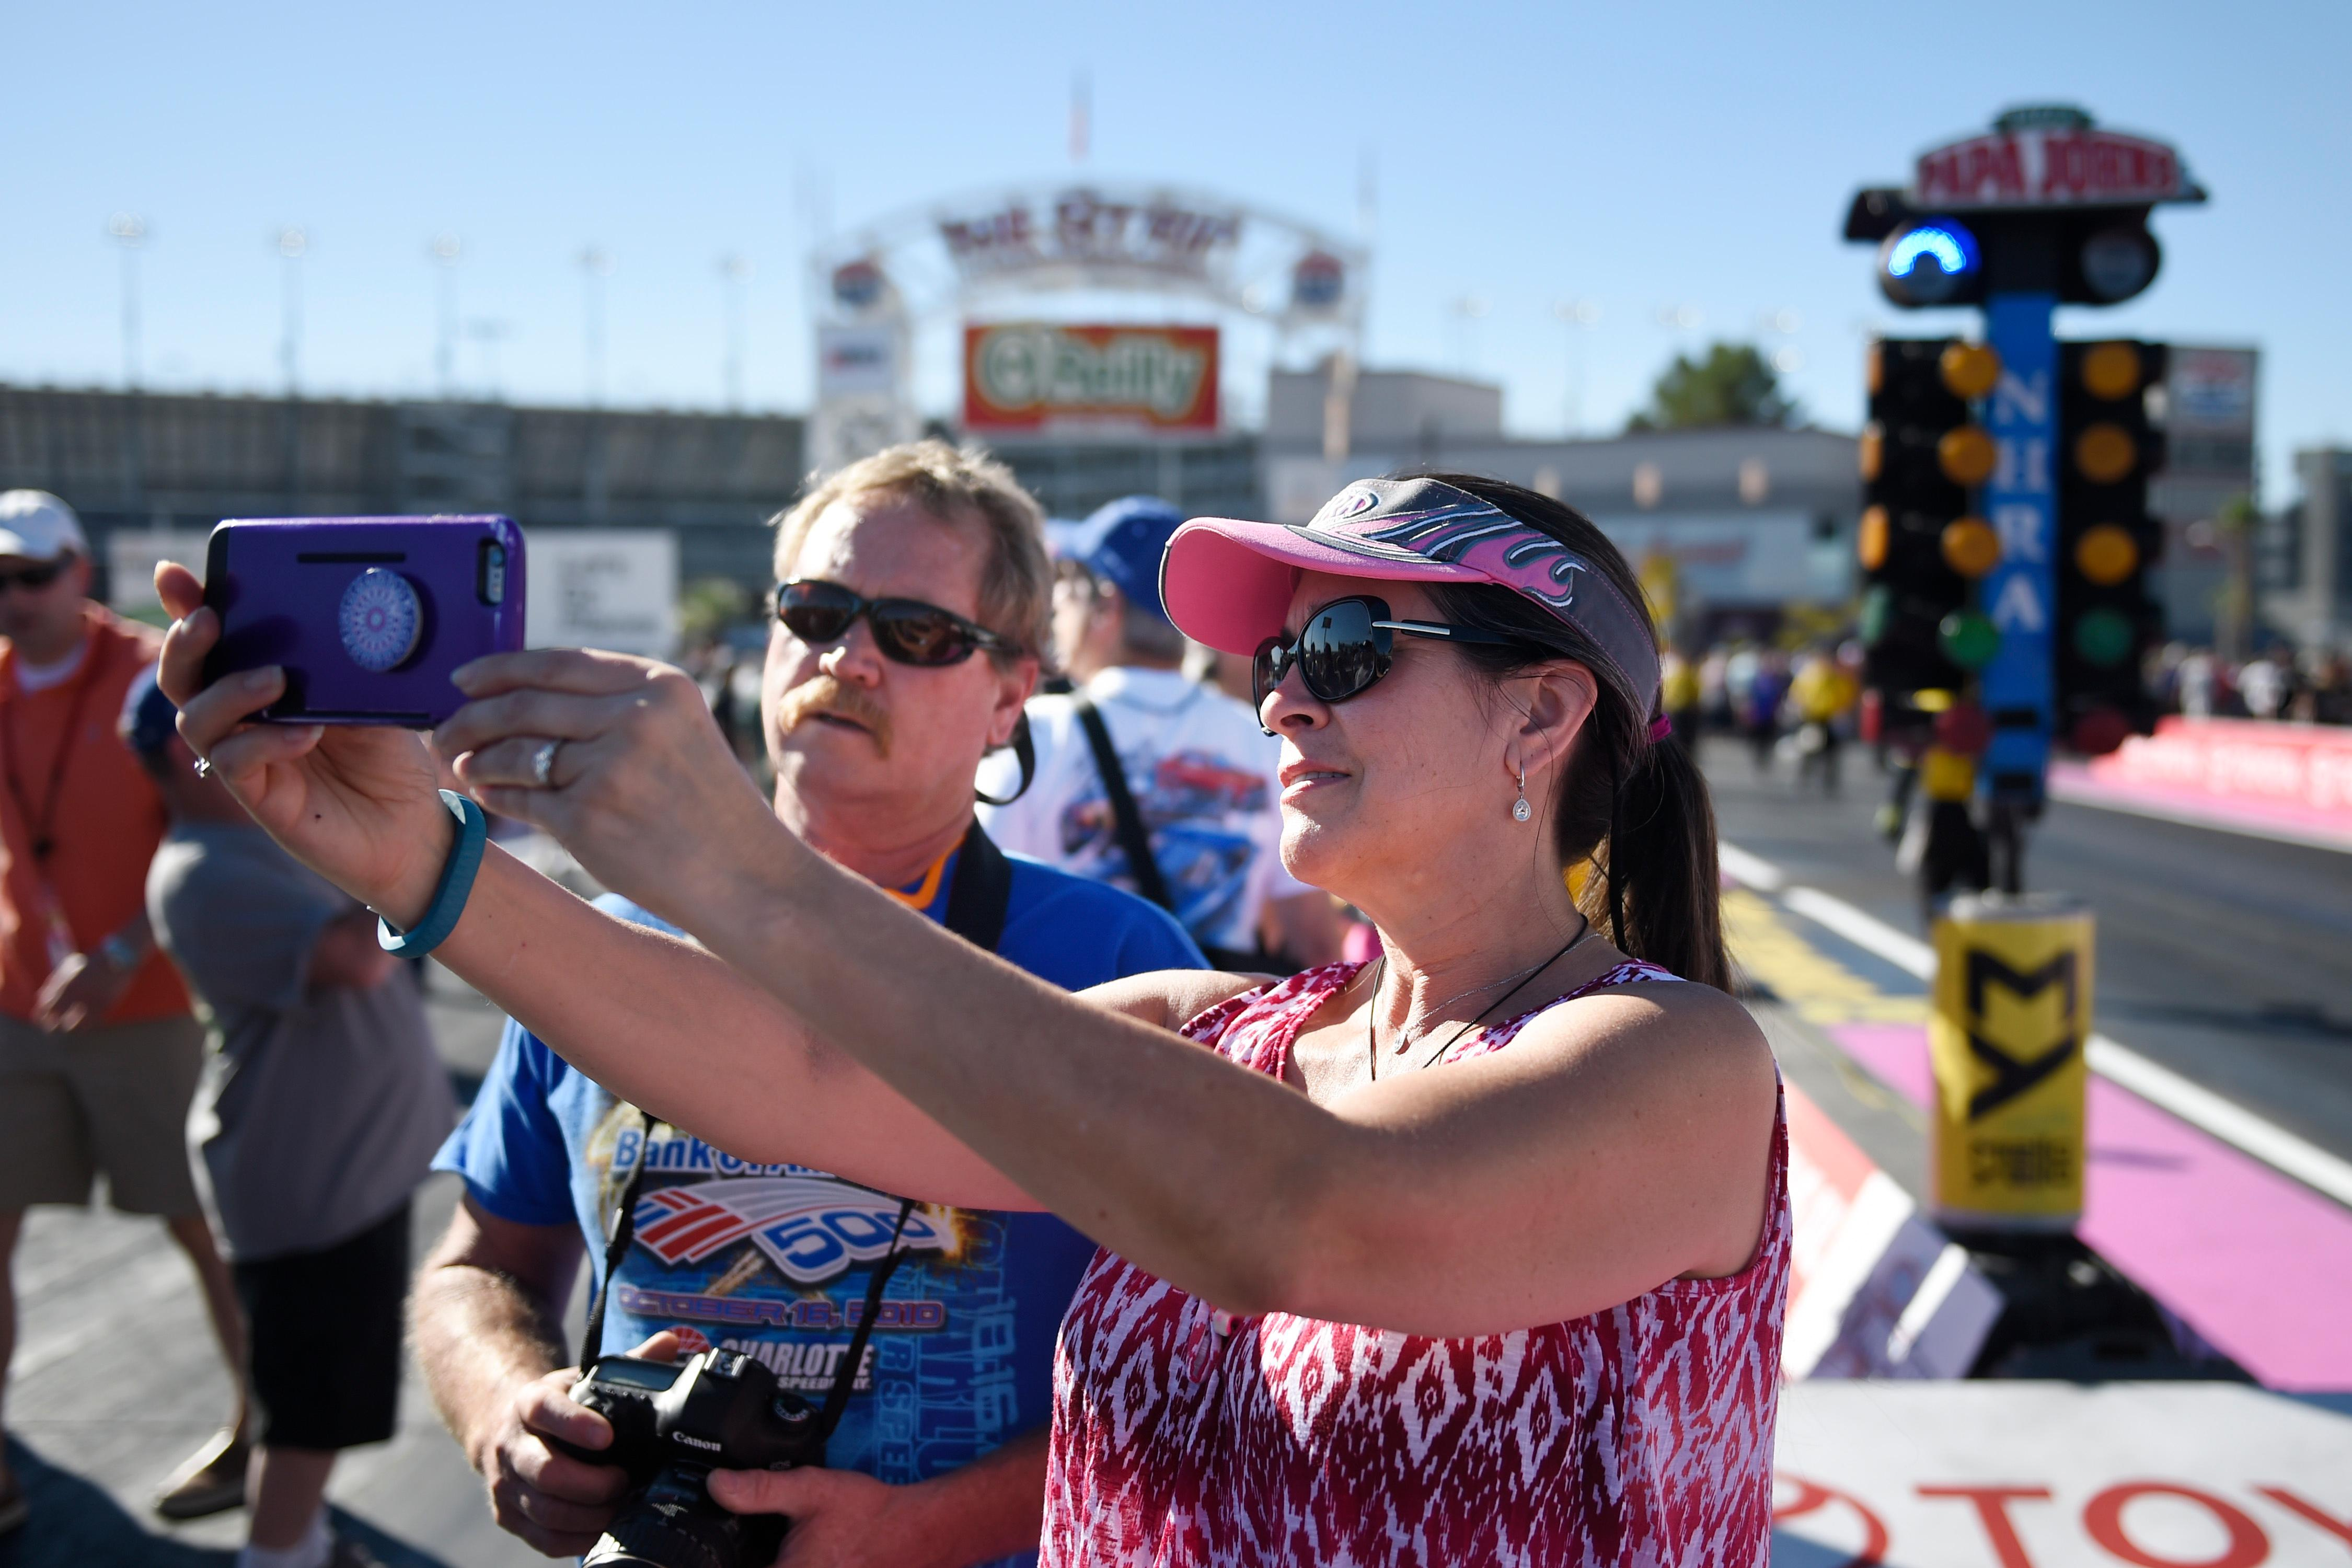 Fans take a photo during a track walk before the NHRA Toyota Nationals Sunday, October 29, 2017, at The Strip at the Las Vegas Motor Speedway. CREDIT: Sam Morris/Las Vegas News Bureau